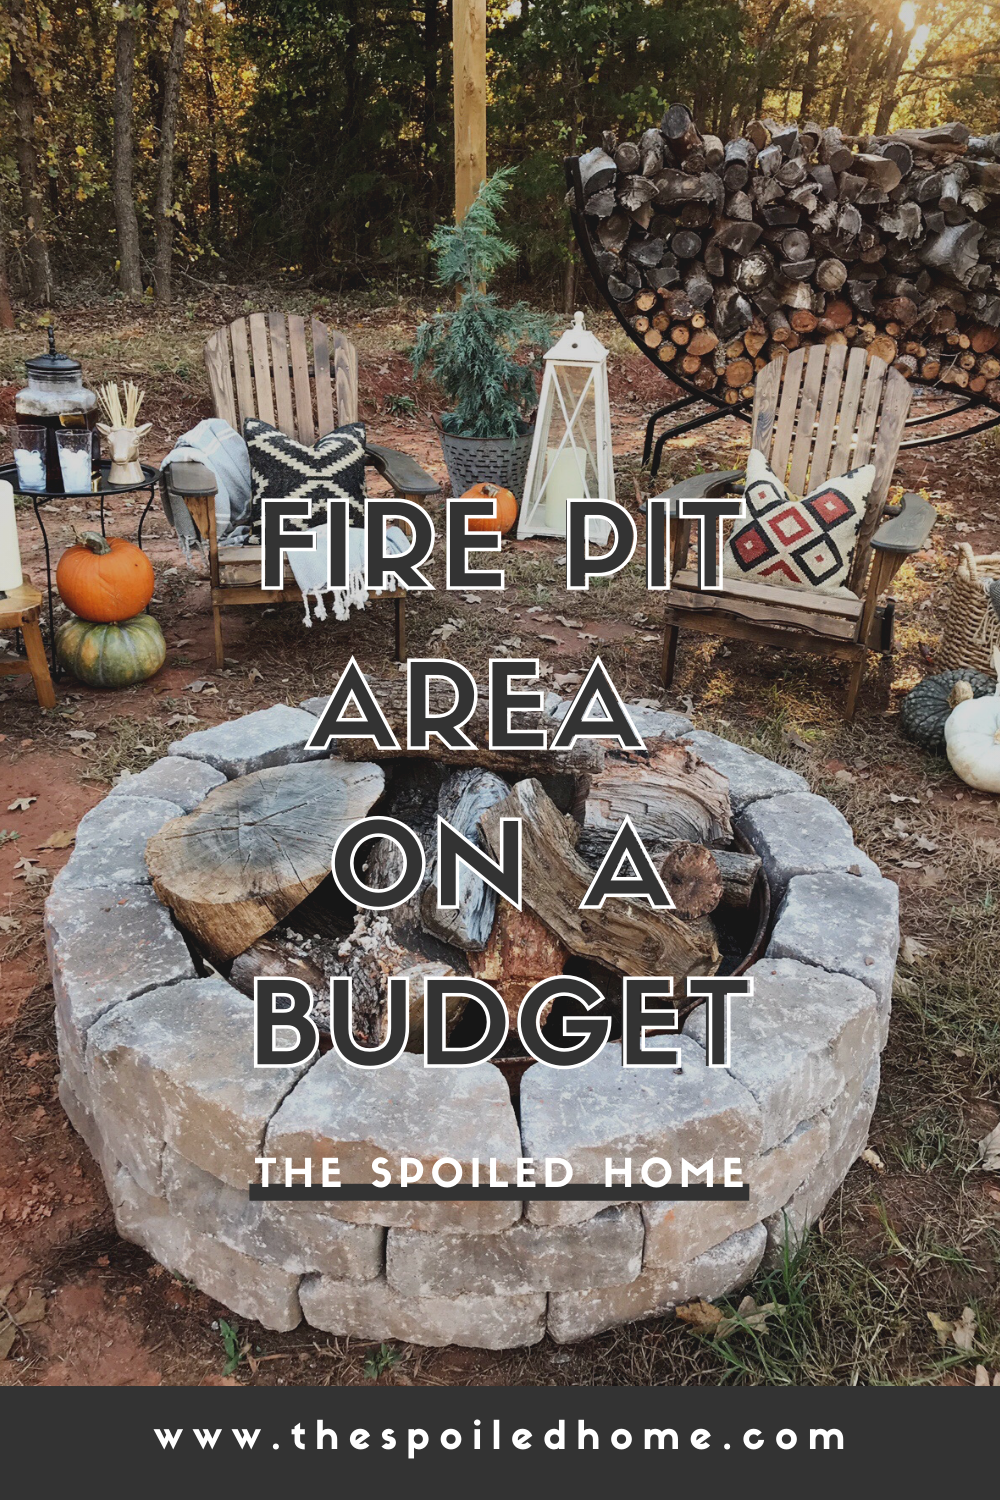 Check out our DIY fire pit area and outdoor space on a budget. Adirondack chairs, string lights, wood holder and more DIY ideas.#FirePitIdeas FirePitIdeasOnABudget #thespoiledhome #firepit